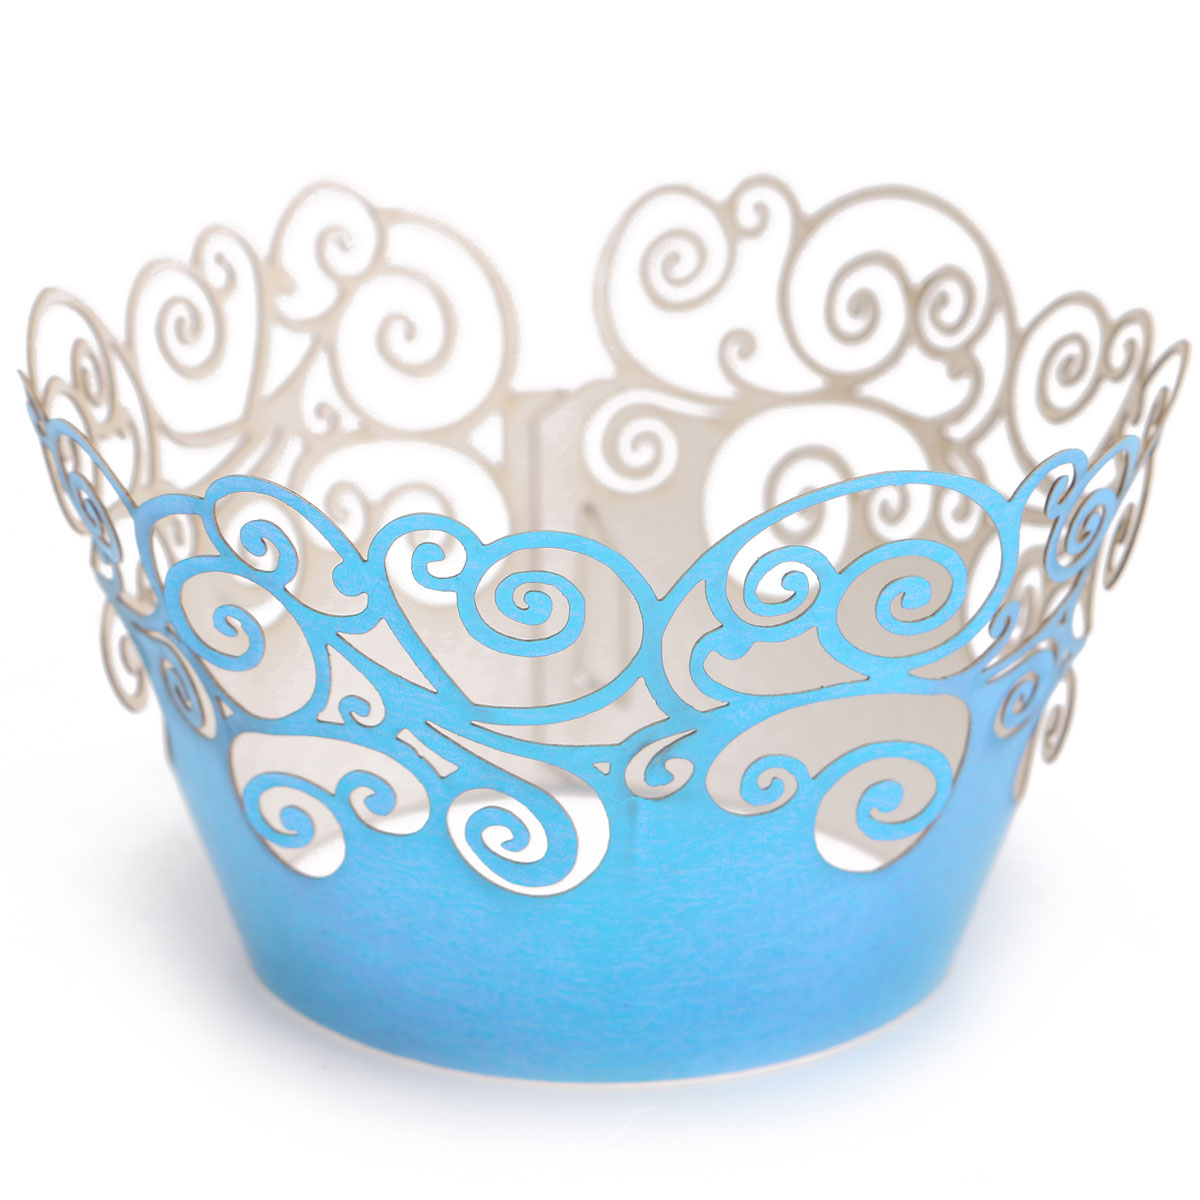 12pcs Pearly Cloud Filigree Vine Cupcake Wrappers Wrap Case Wedding Party Decor